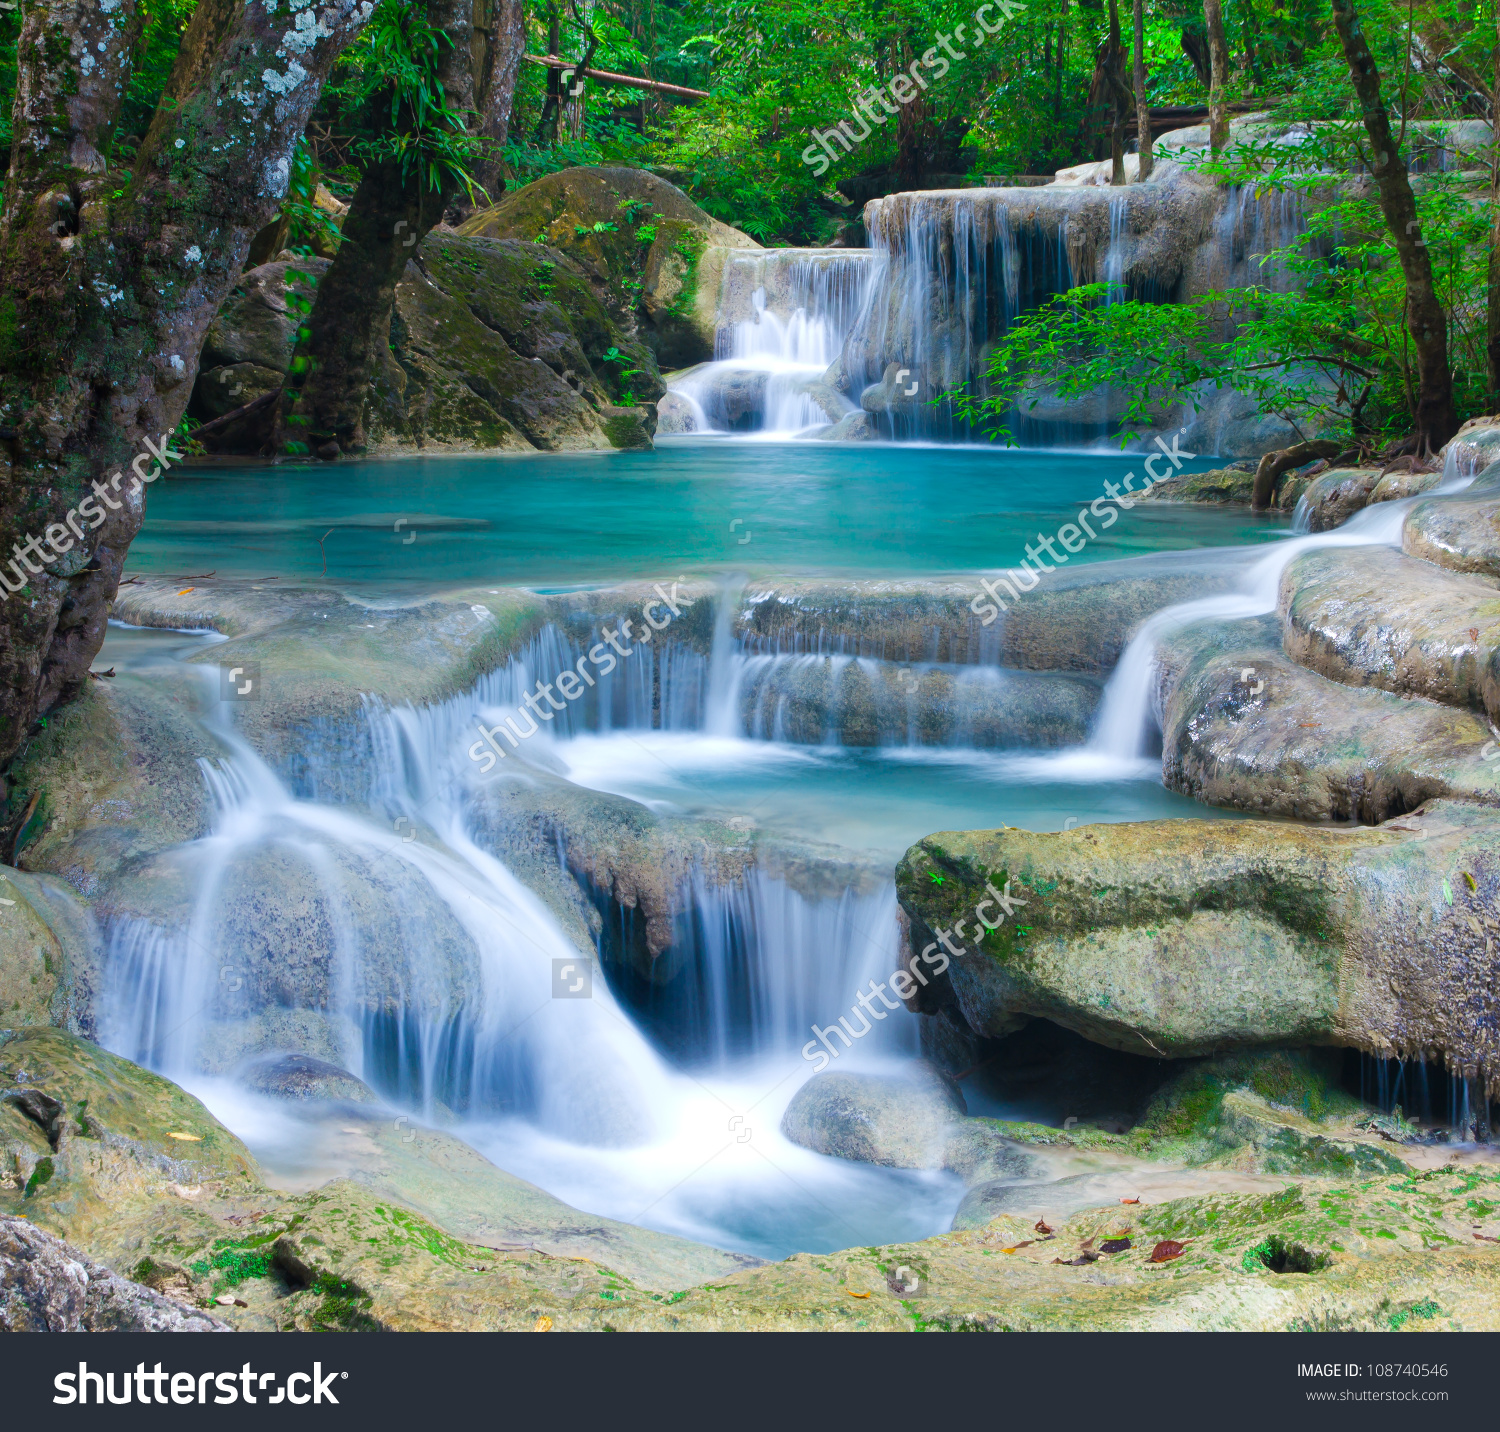 Erawan Waterfall clipart #13, Download drawings